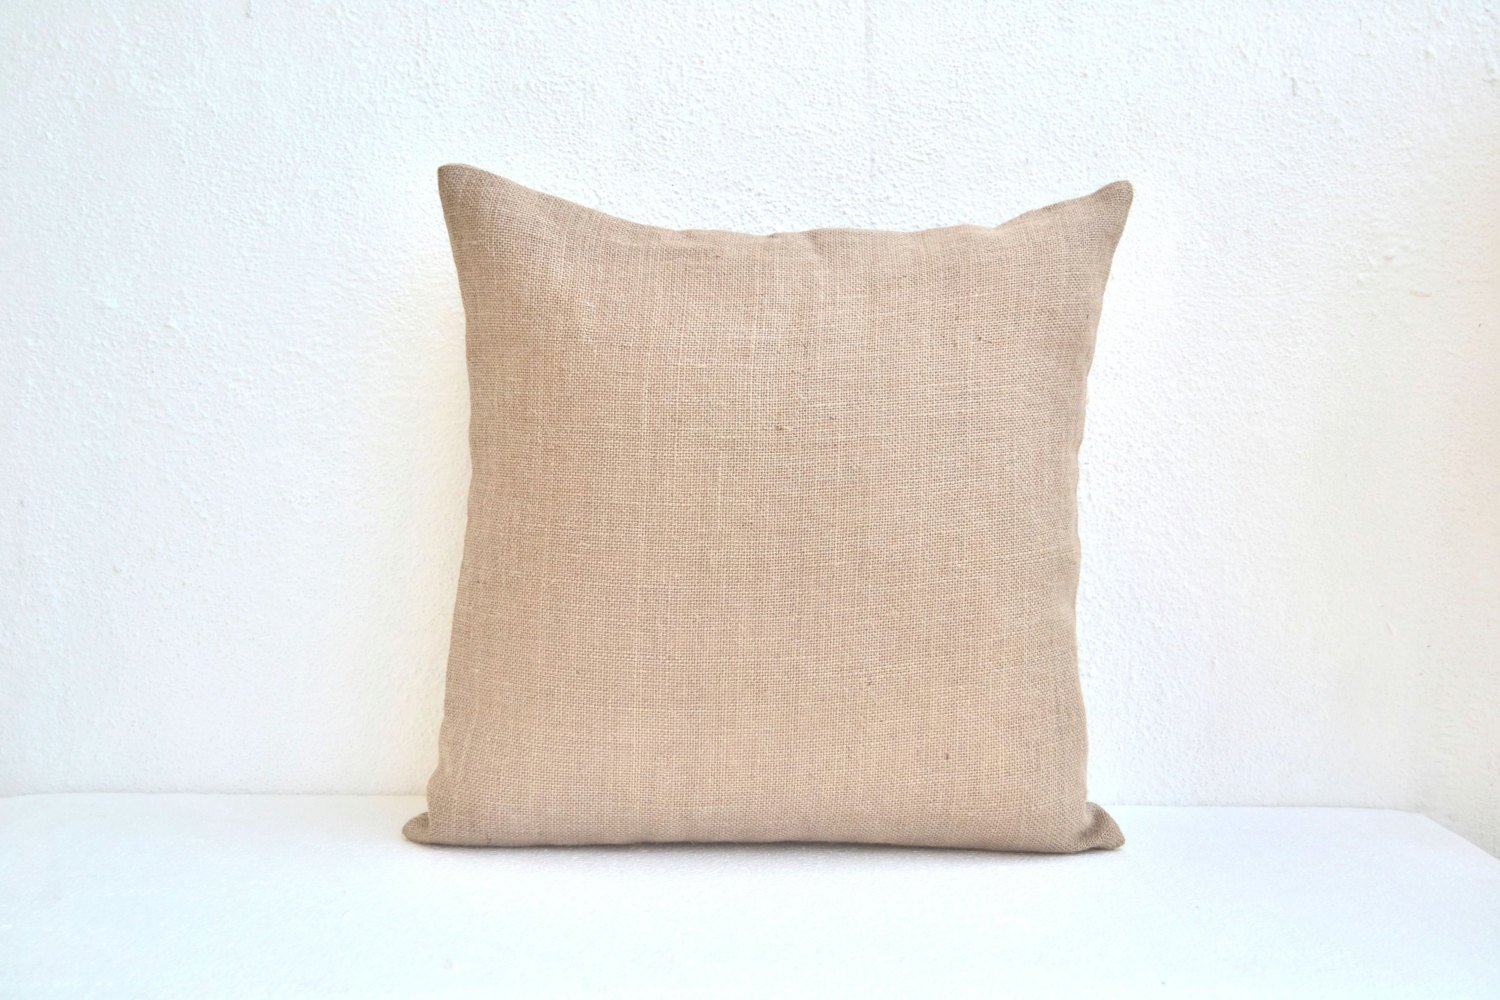 case or your canvas pillow pin burlap cushion cover beleive selfie accent in throw